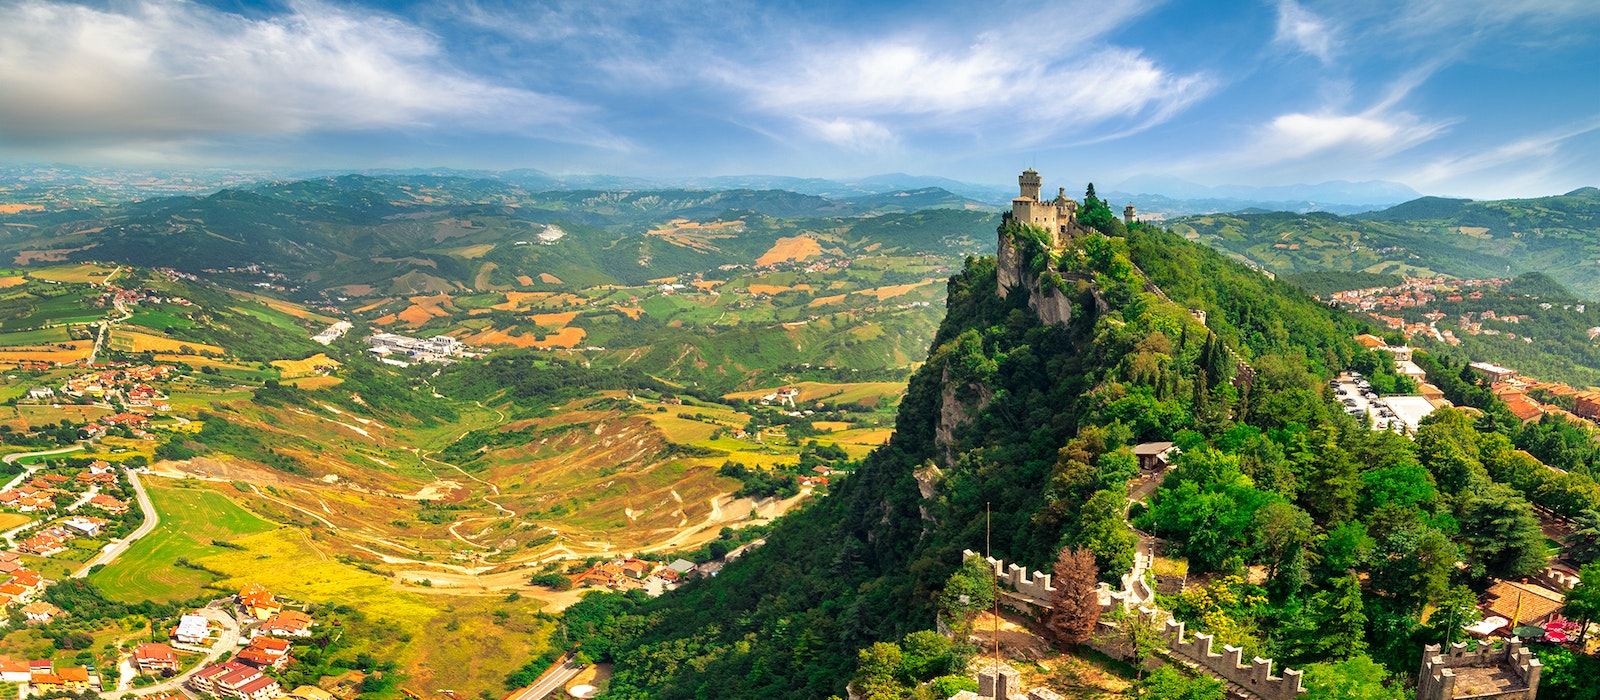 The micronation of San Marino was the fastest growing destination in Europe last year.